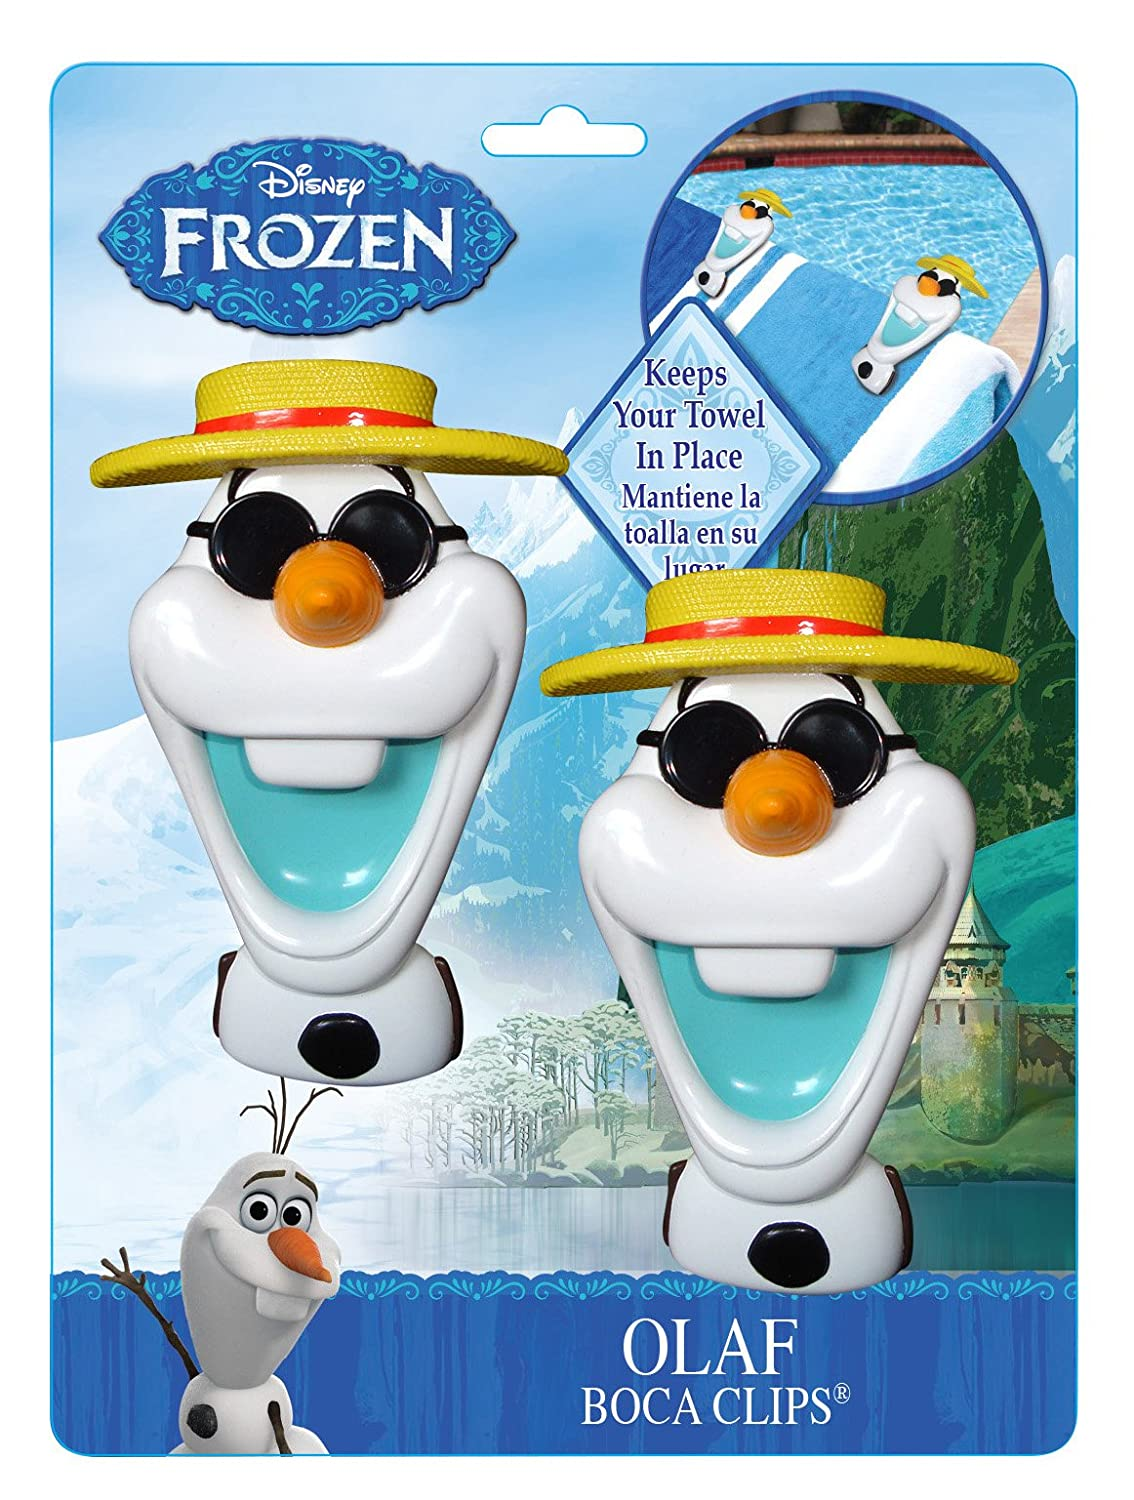 Amazon.com : Frozen Olaf BocaClips by O2COOL, Beach Towel Holder, Clips, Set of two, Beach, Patio or Pool Accessories, Portable Towel Clips, Chip Clips, ...